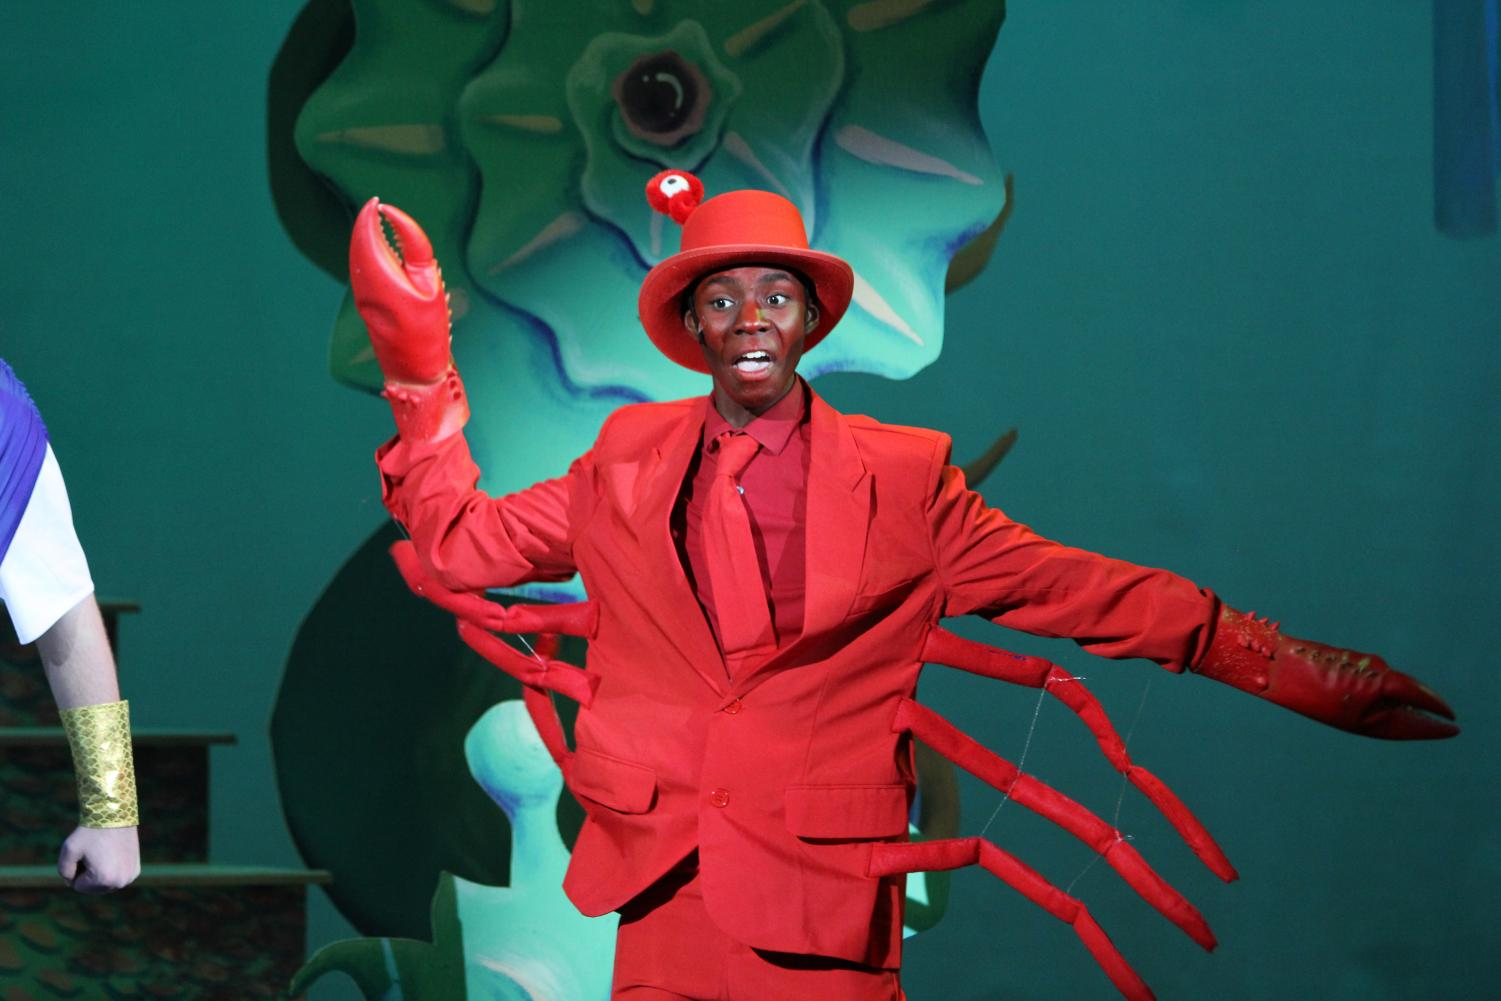 Junior Nathaniel Mahone played Sebastian in The Lafayette Theater Company's production of The Little Mermaid his freshman year.